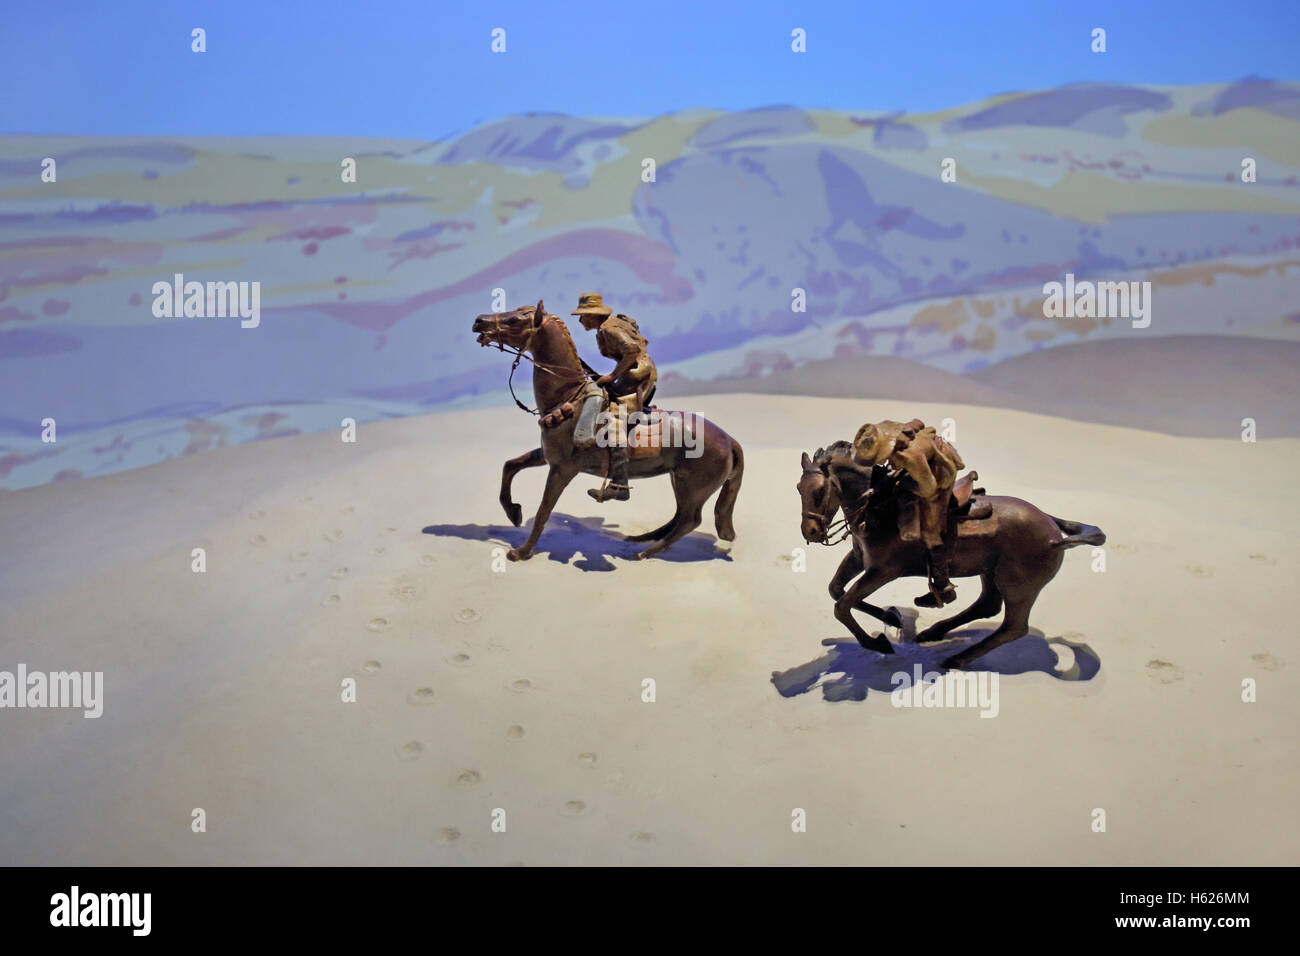 Desert Diorama Stock Photos & Desert Diorama Stock Images